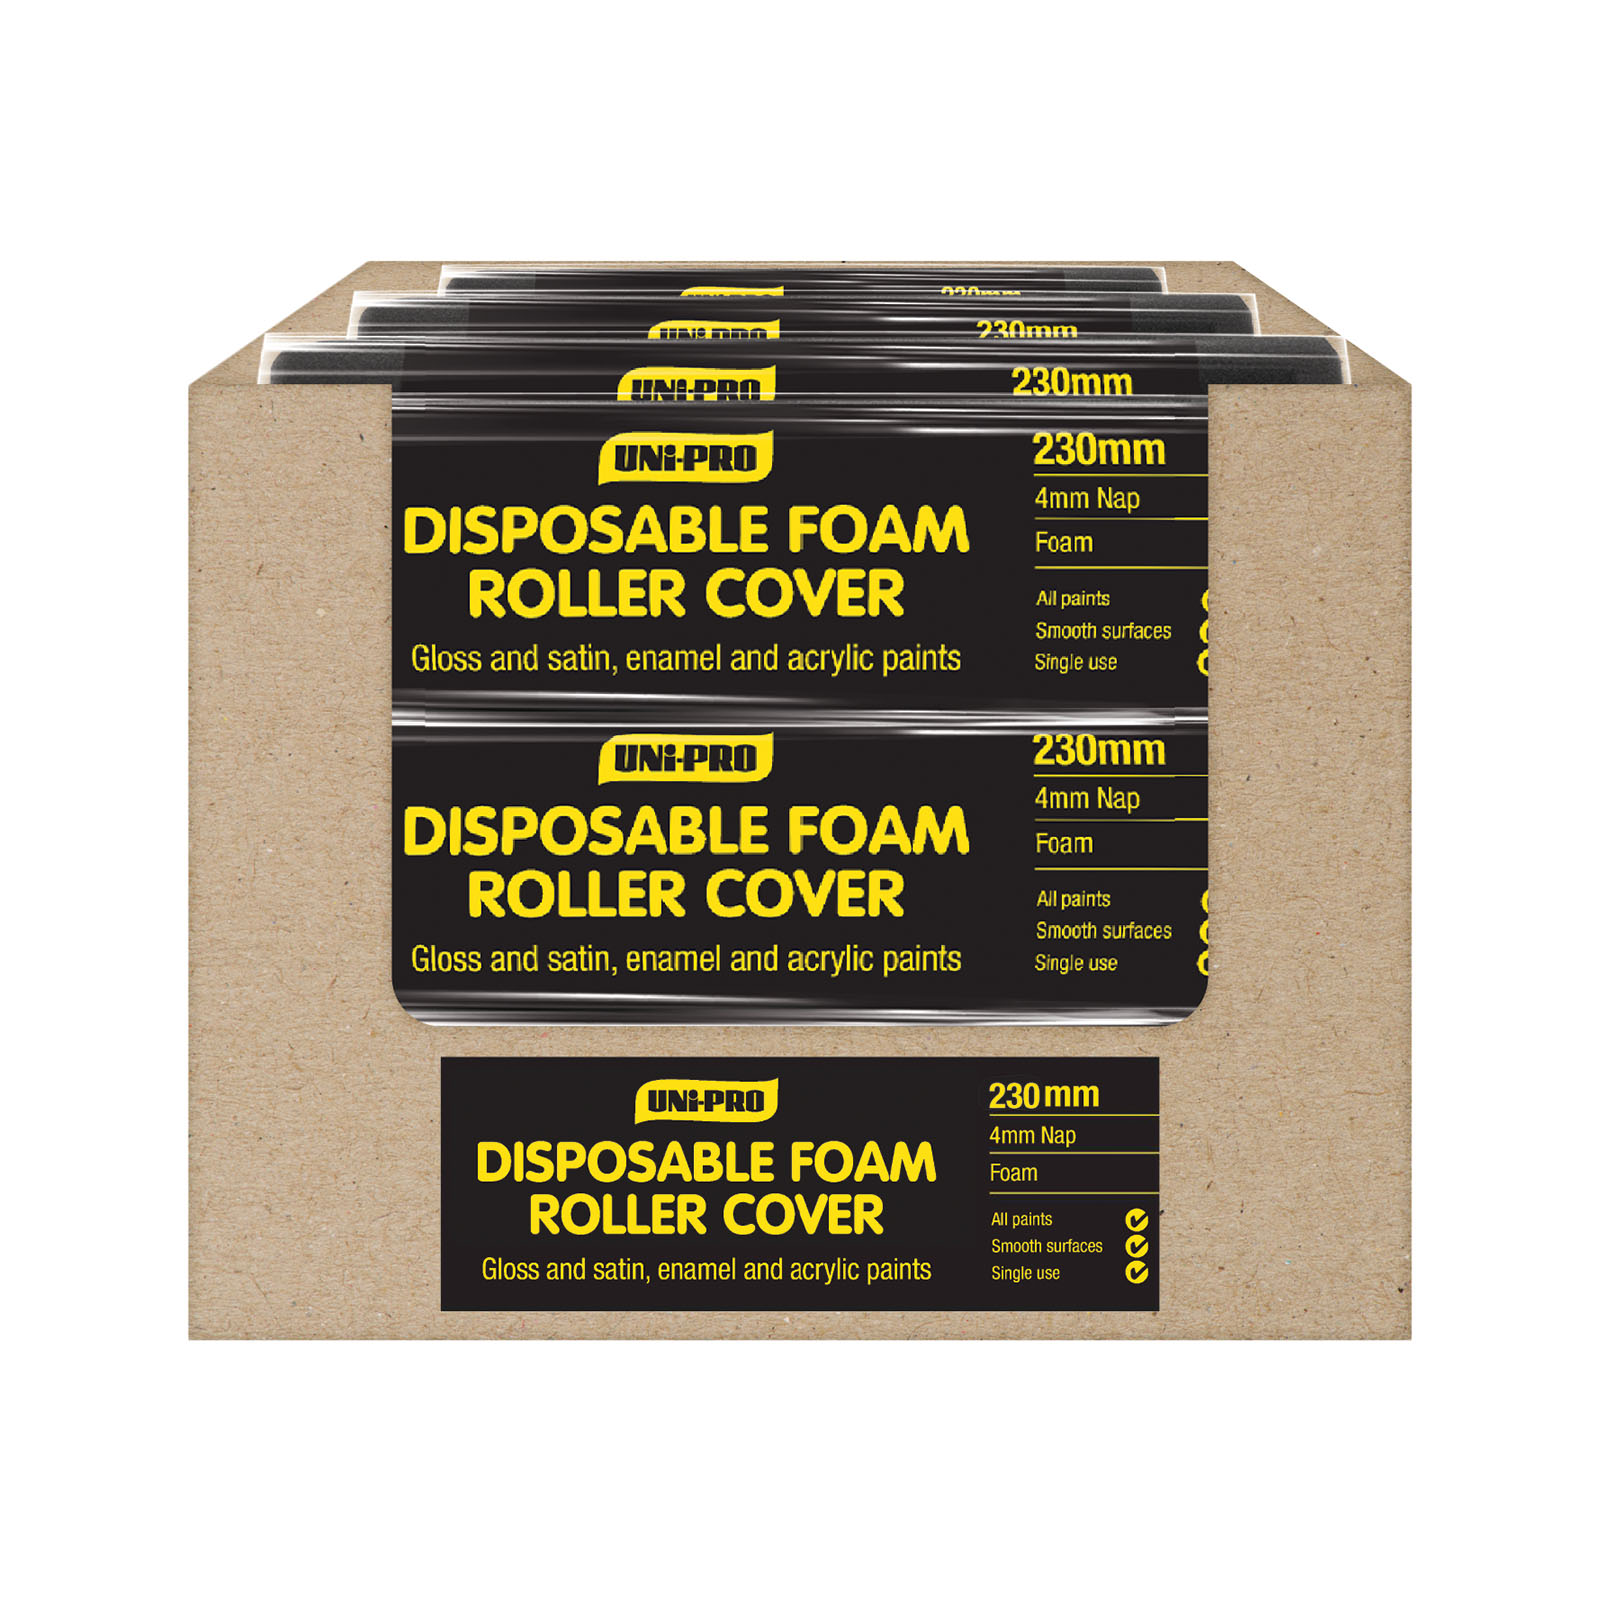 UNi-PRO Disposable Foam Roller Covers - 5mm Nap